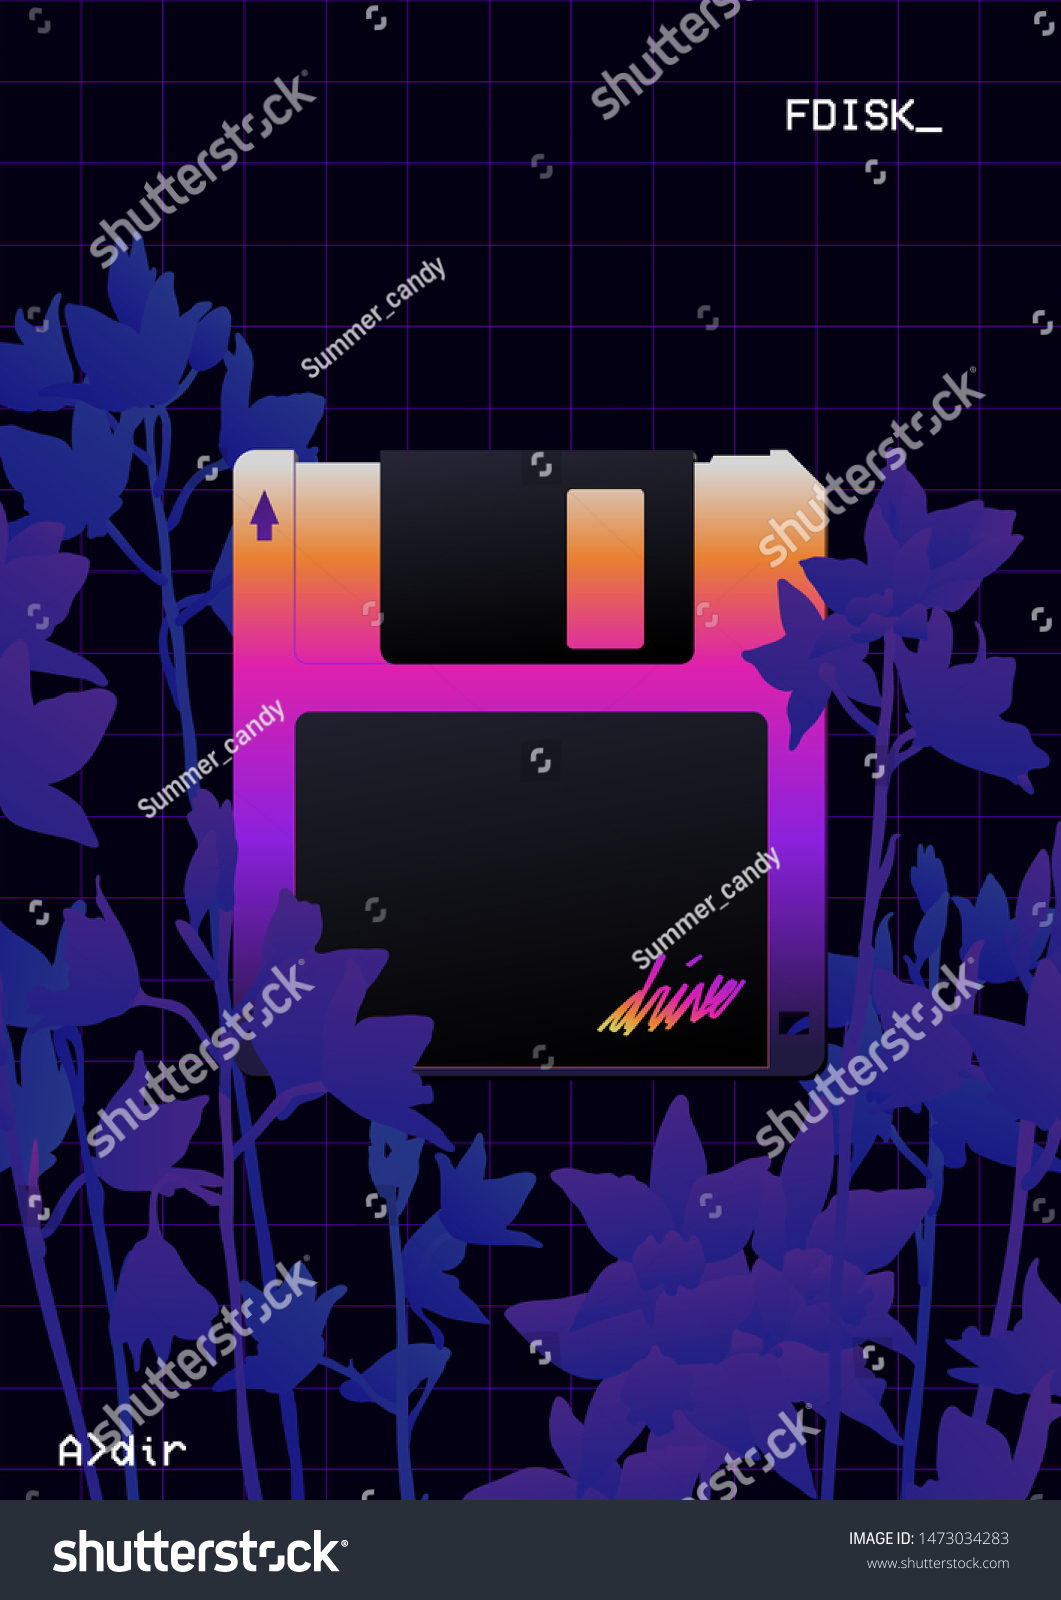 aesthetic retrowave floppy disk icon ultraviolet stock vector royalty free 1473034283 https www shutterstock com image vector aesthetic retrowave floppy disk icon ultraviolet 1473034283